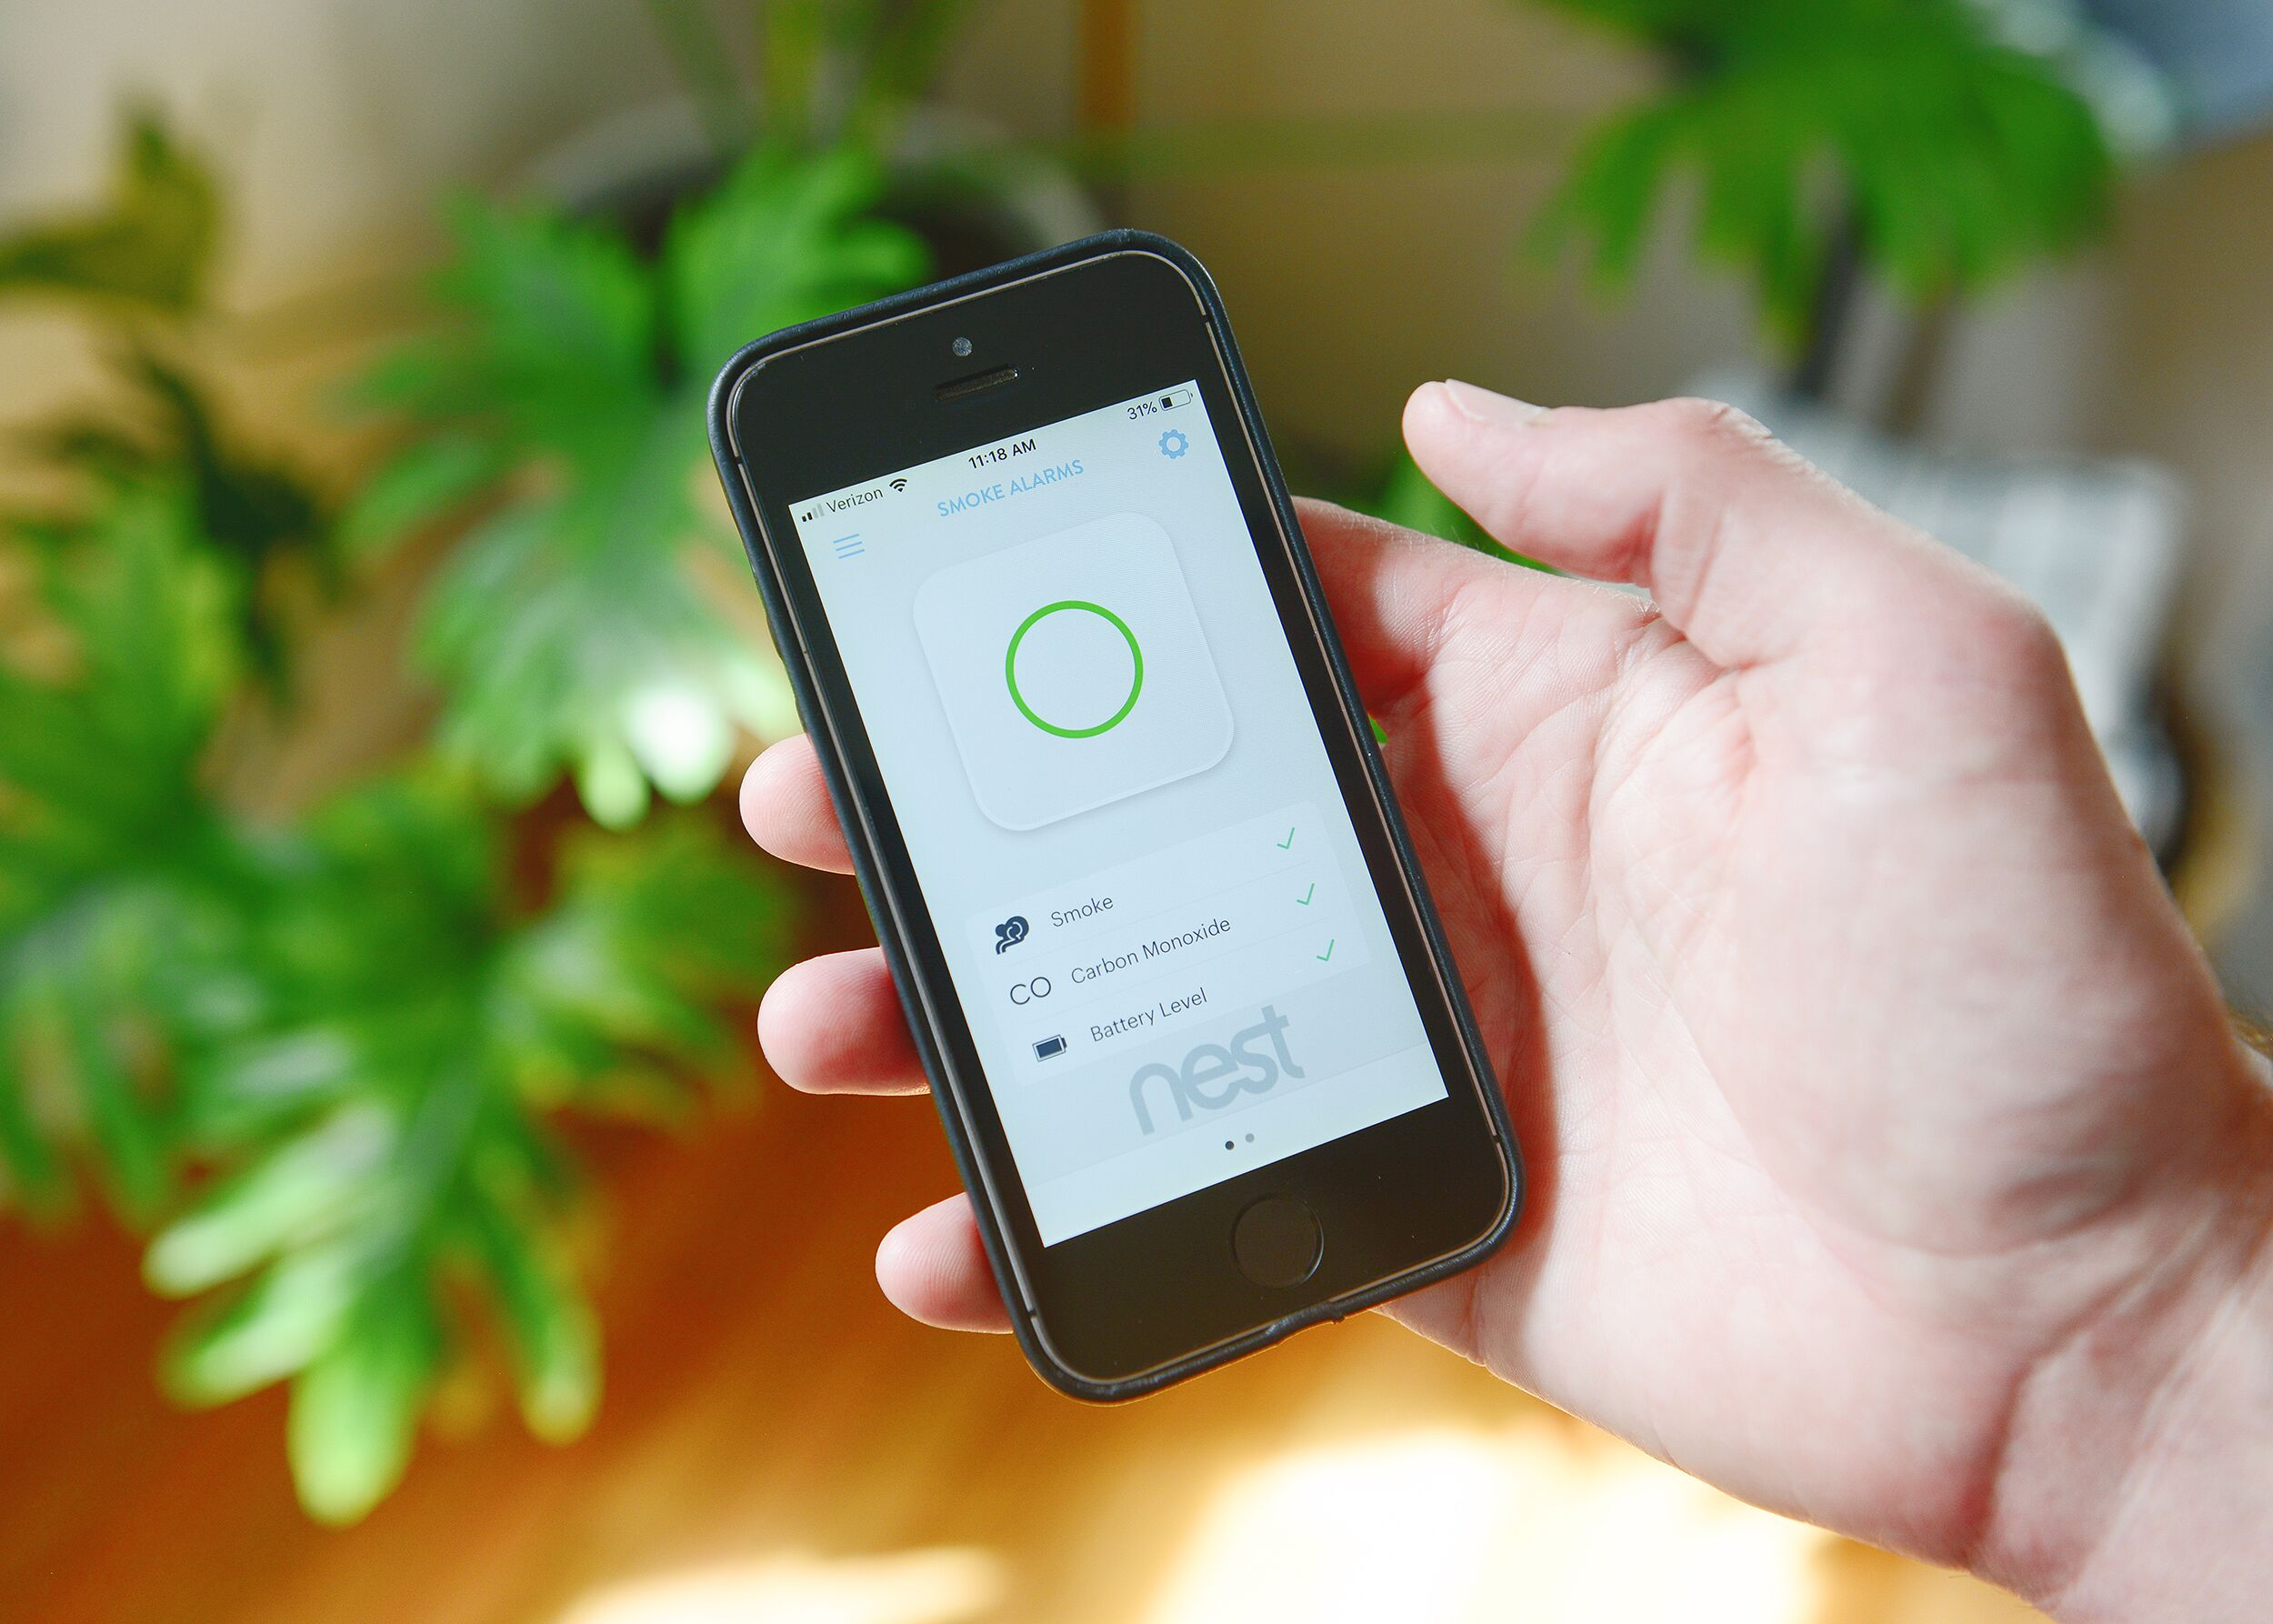 smart home device accessed through phone